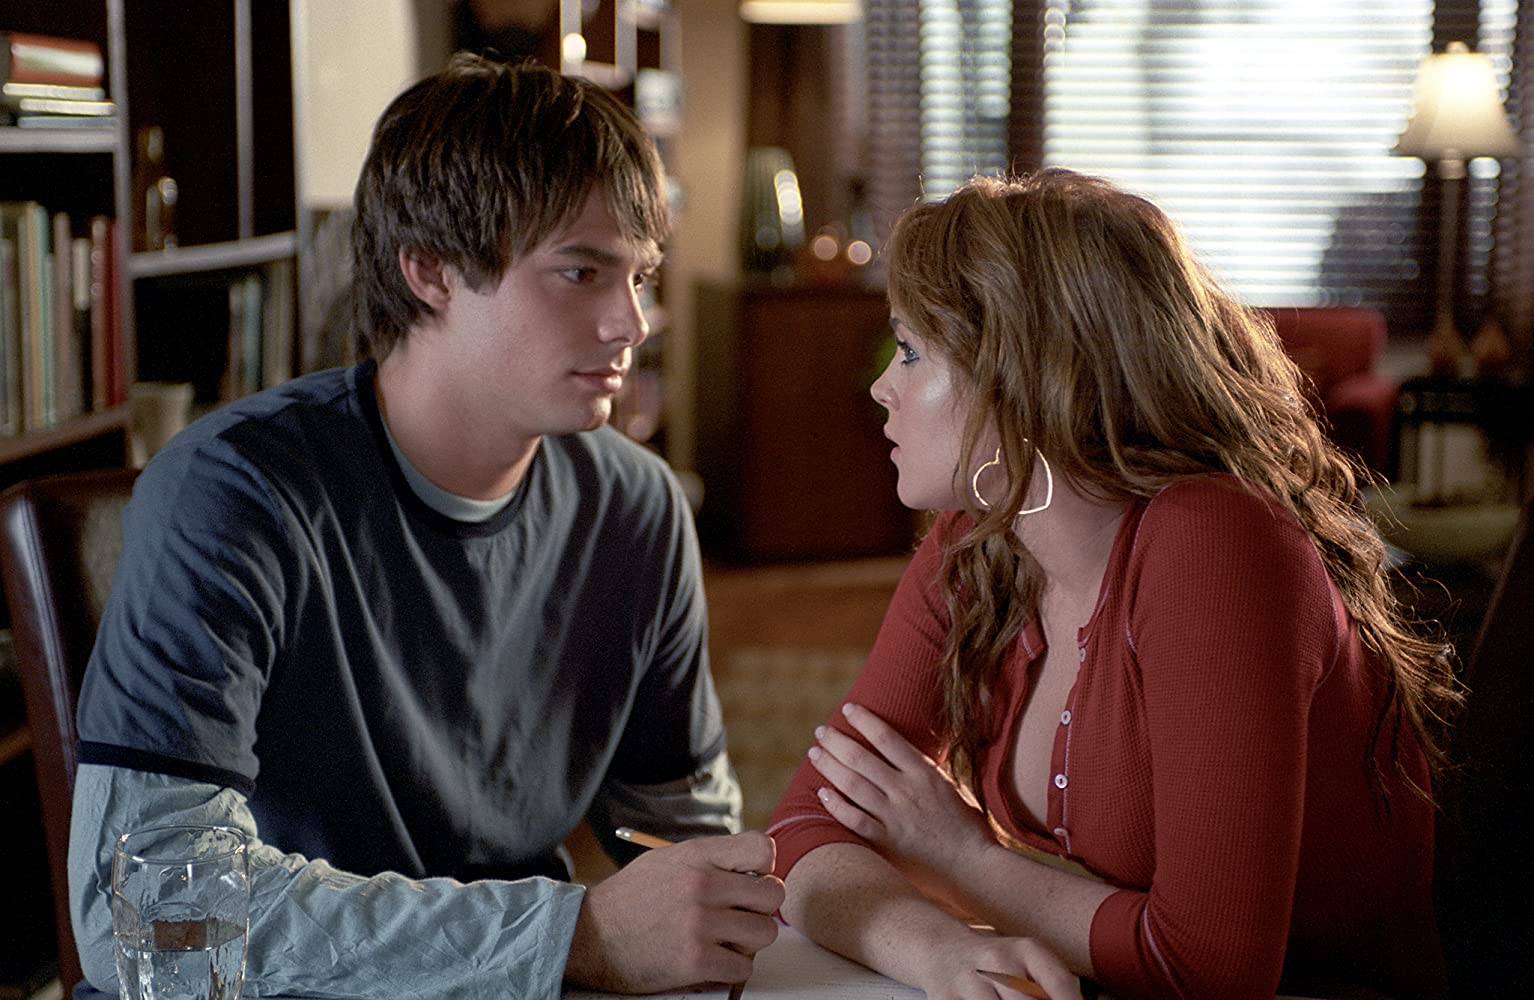 Lindsay Lohan and Jonathan Bennett in Mean Girls (2004)